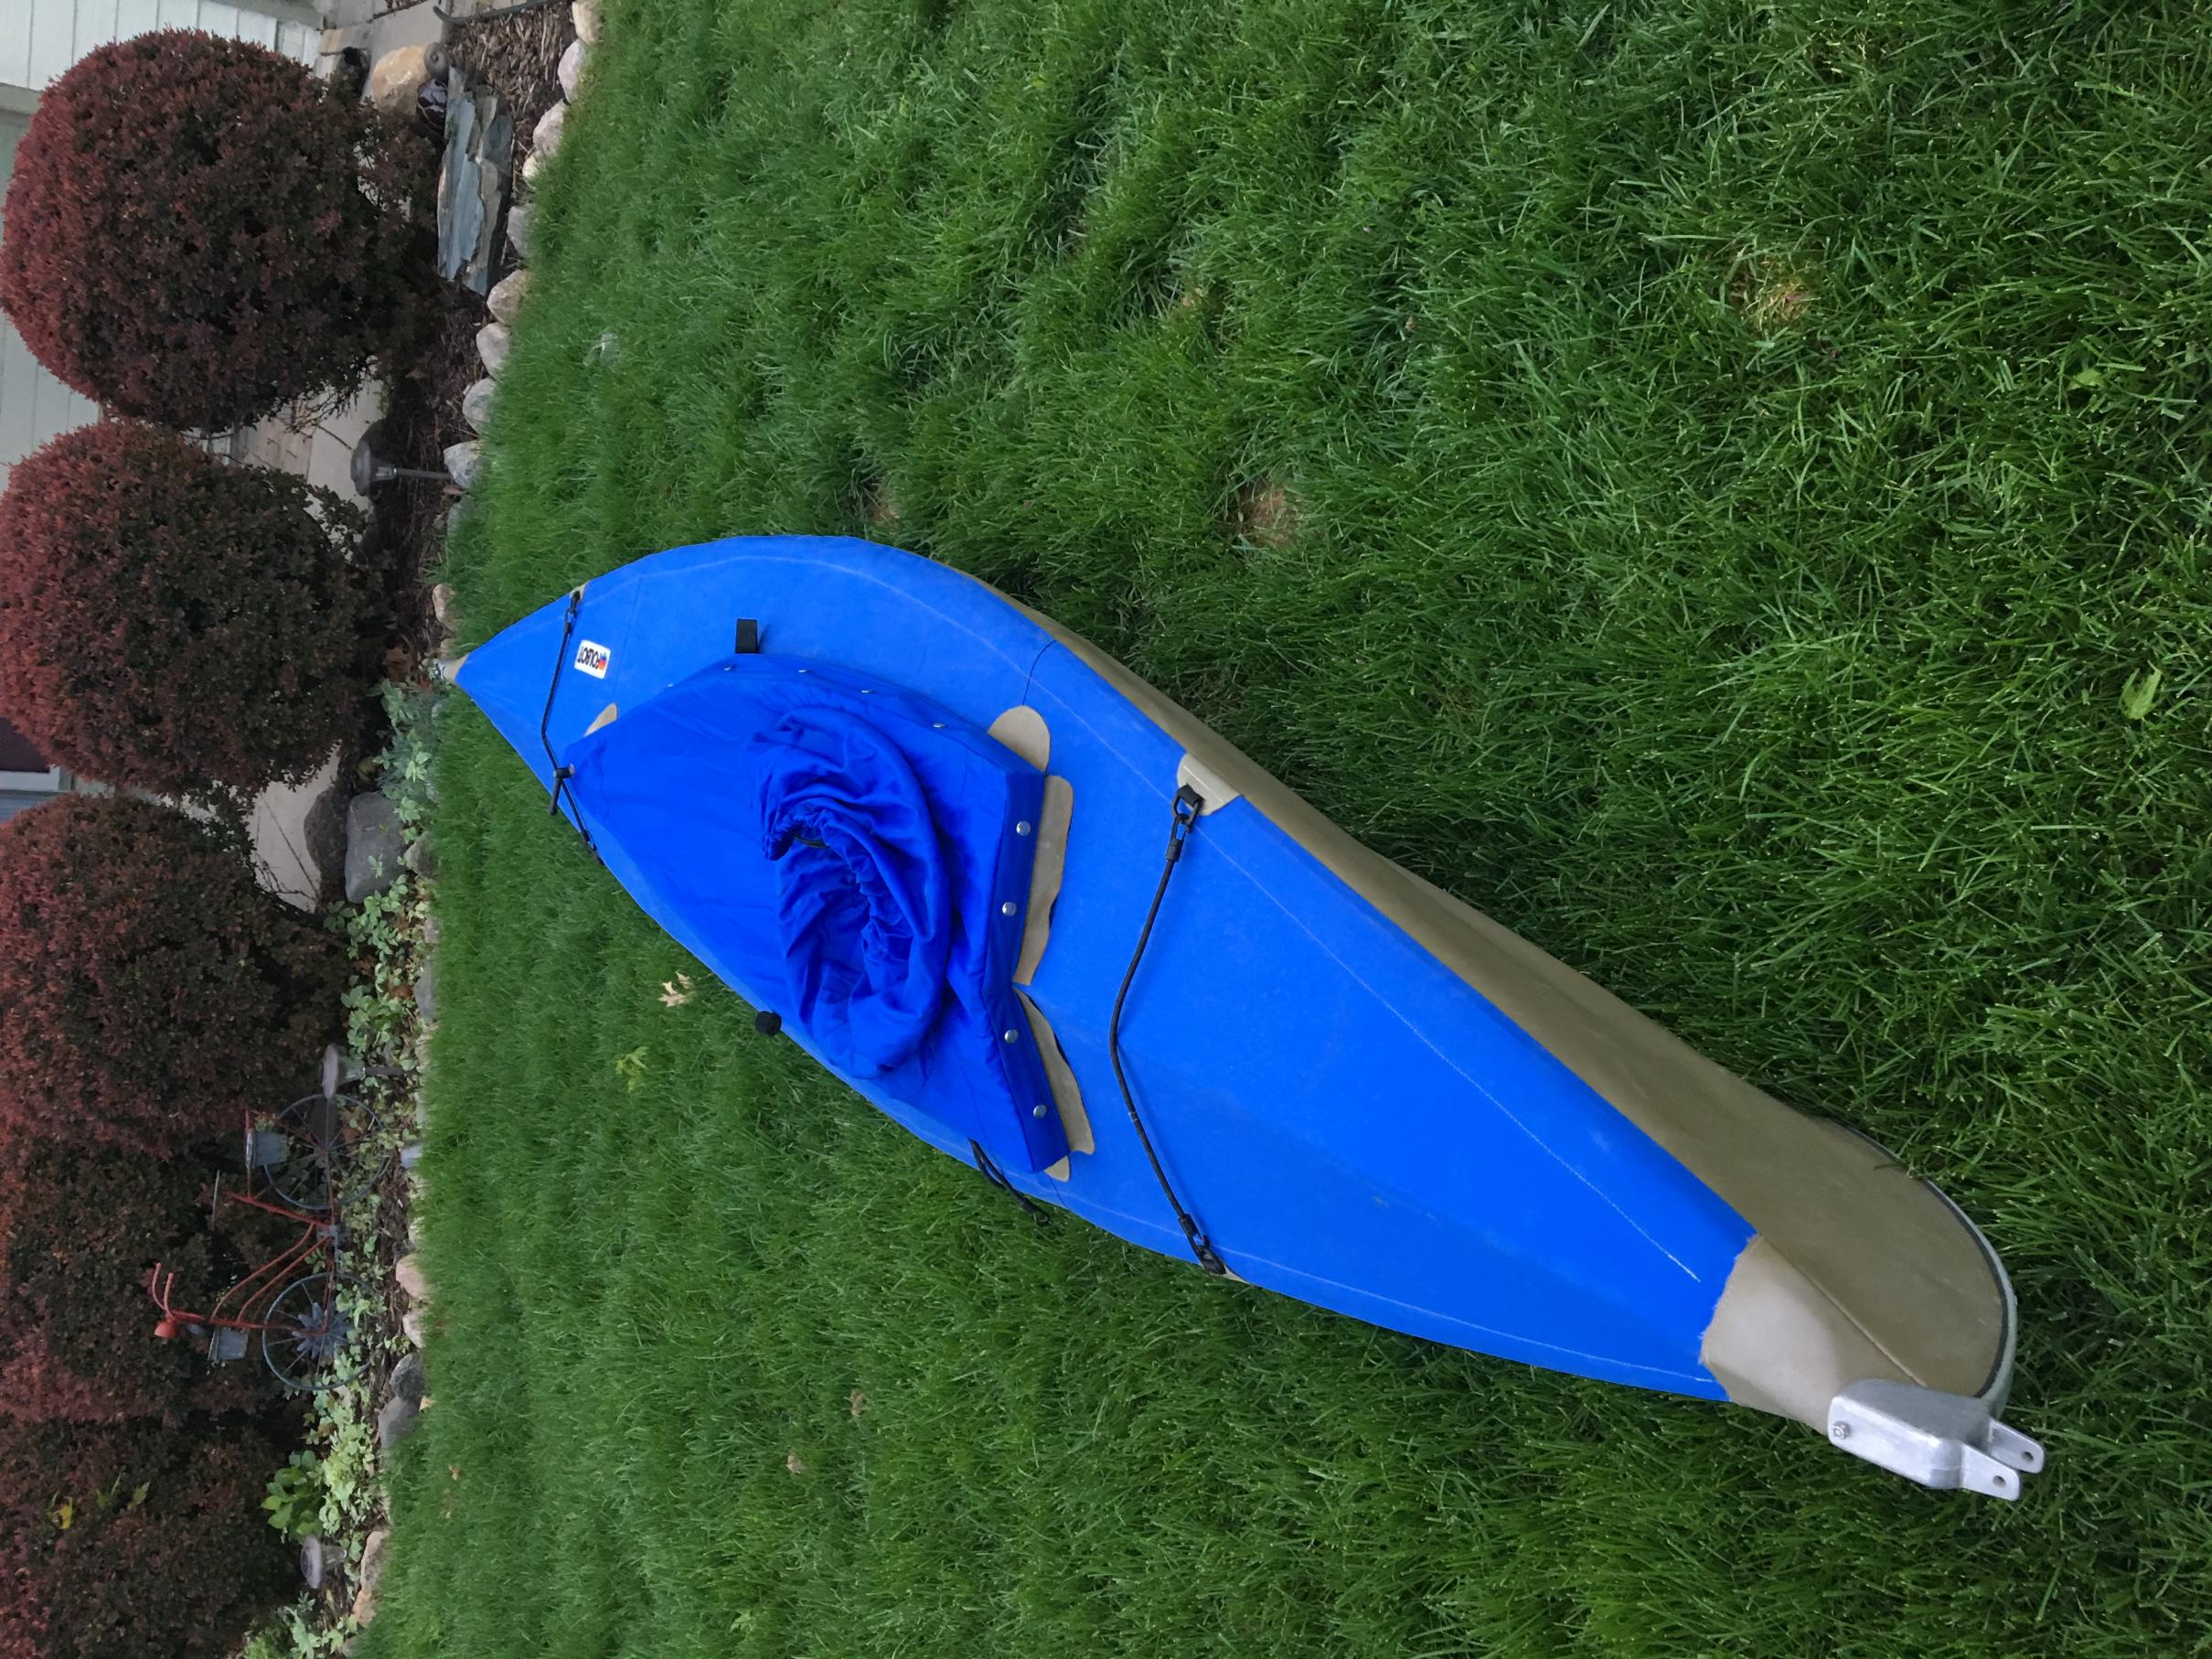 BWCA 12' Folbot Aleut folding kayak Boundary Waters Items